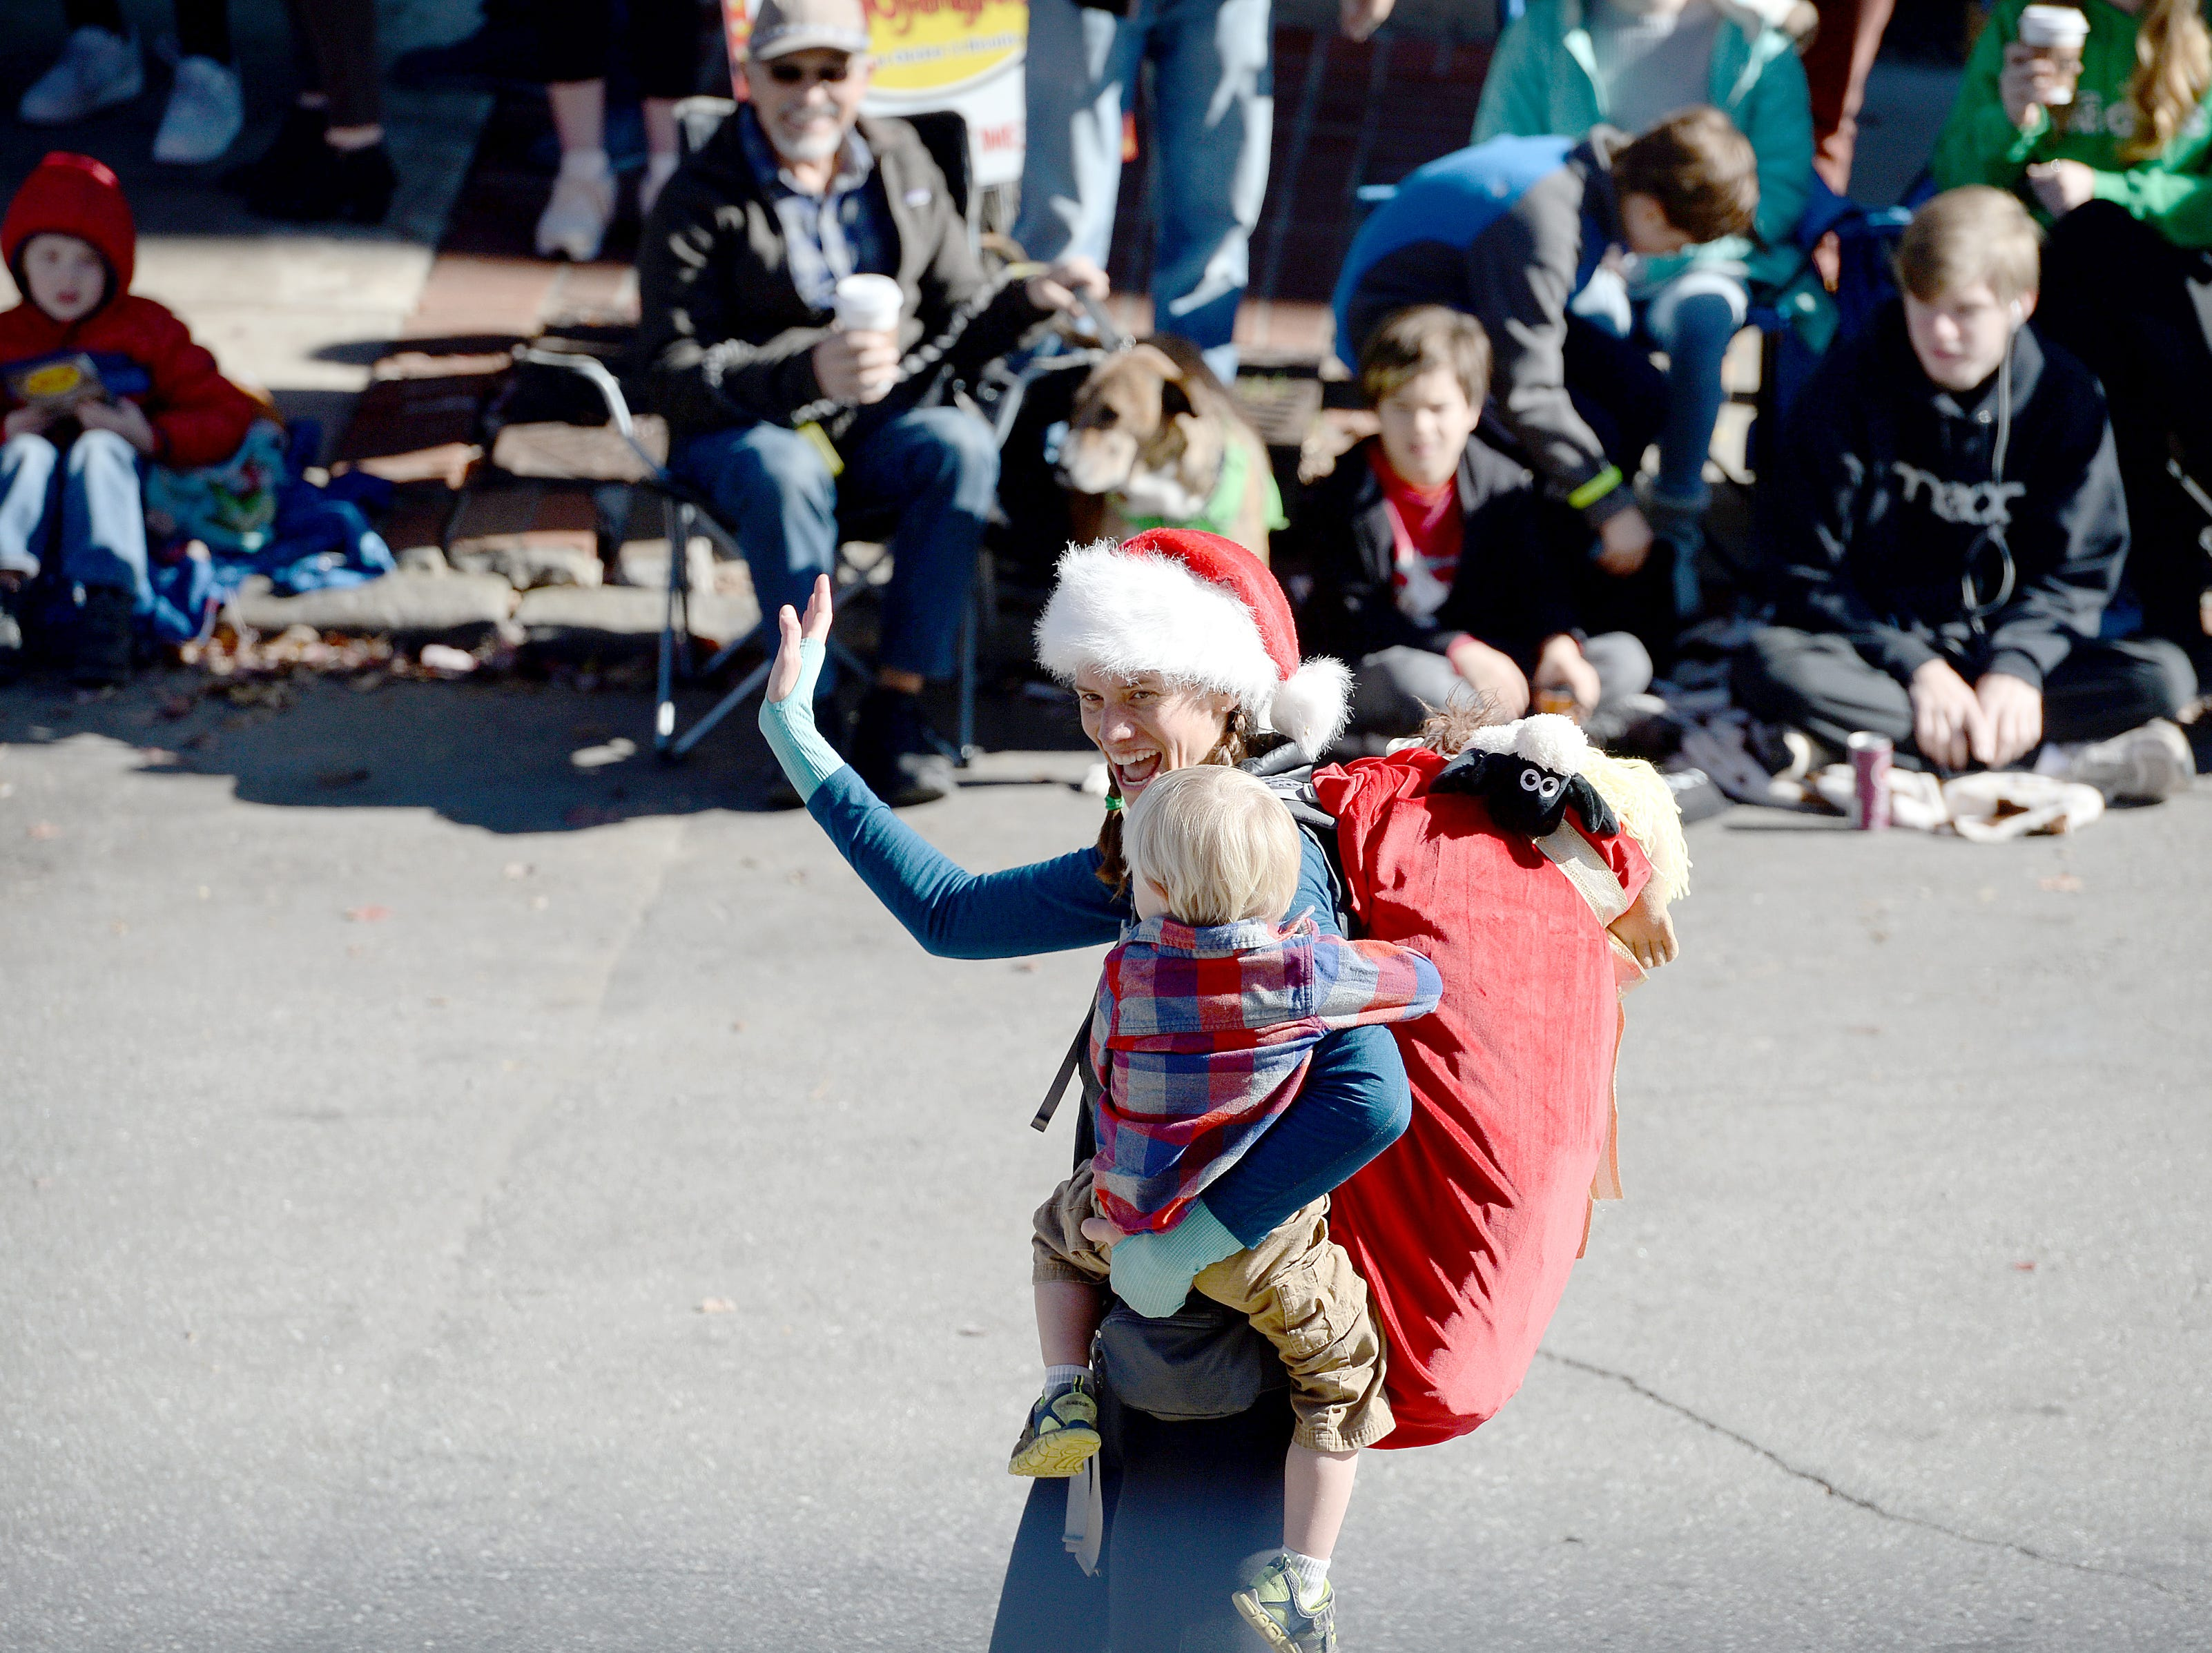 Jennifer Pharr Davis, Grand Marshal of the 2018 Asheville Holiday Parade, hikes her way up Biltmore Avenue on Nov. 17, 2018. More than 100 entries walked through the streets lined with spectators in the parade this year.